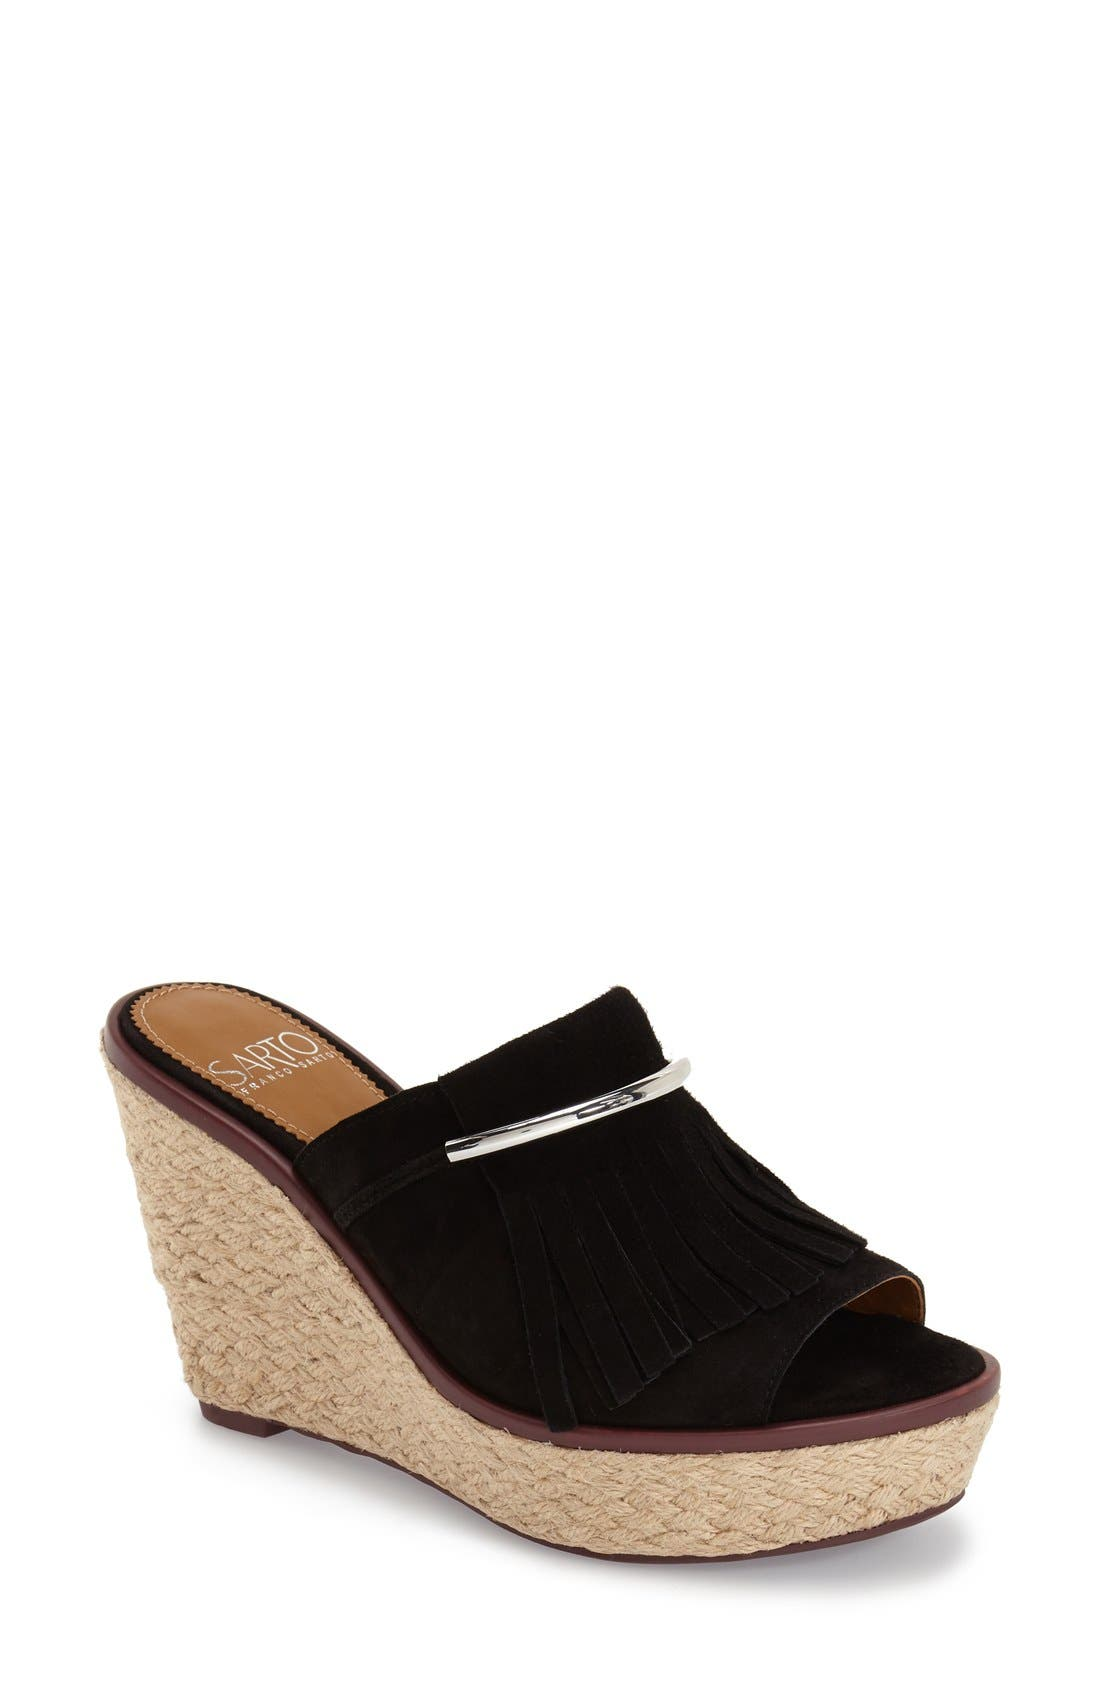 'Candace' Wedge Mule,                             Main thumbnail 1, color,